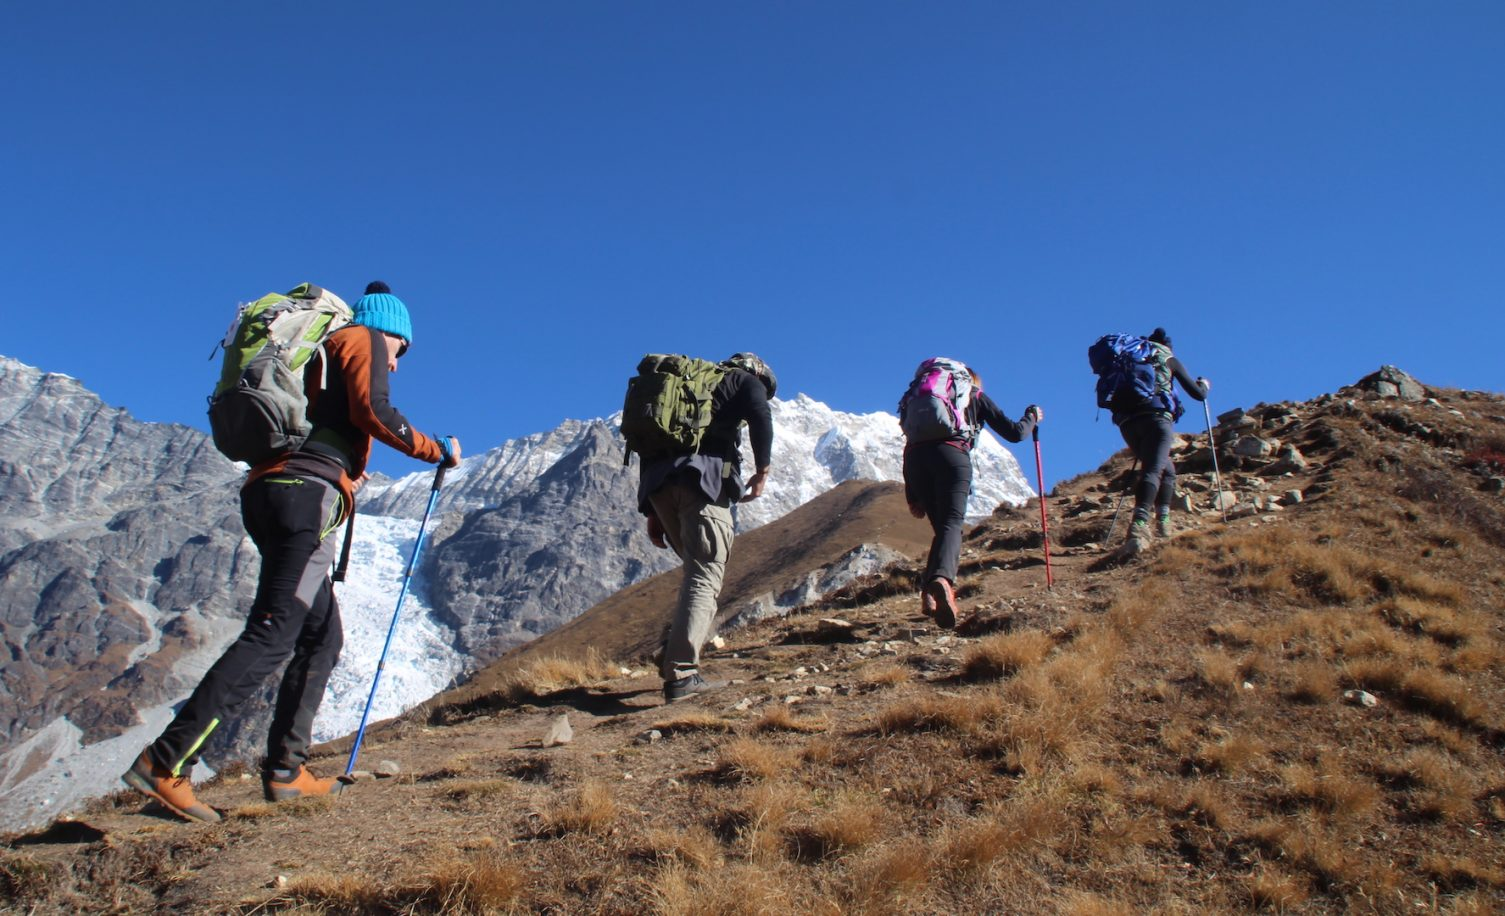 Trek Nar Phu and escape Nepal's apple pie trail